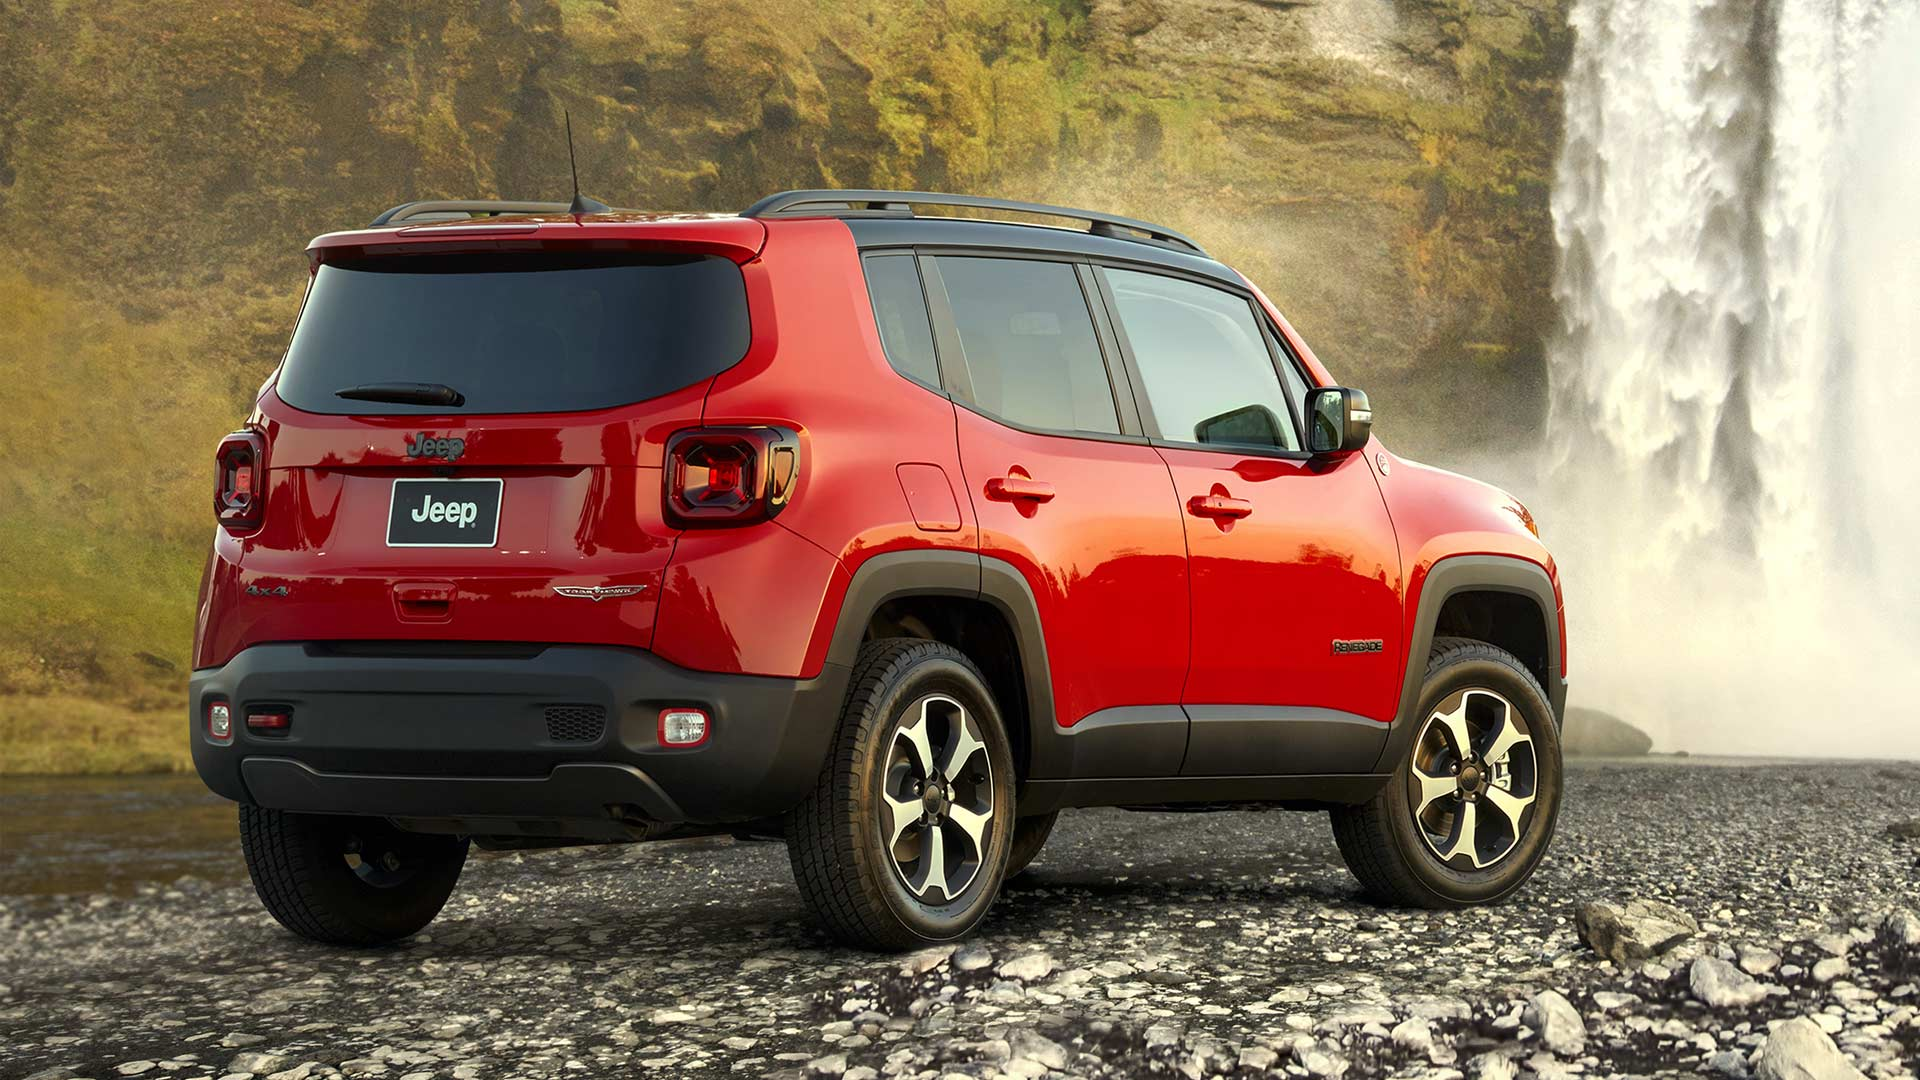 Jeep Renegade Gets A New Engine For 2019 Model Year